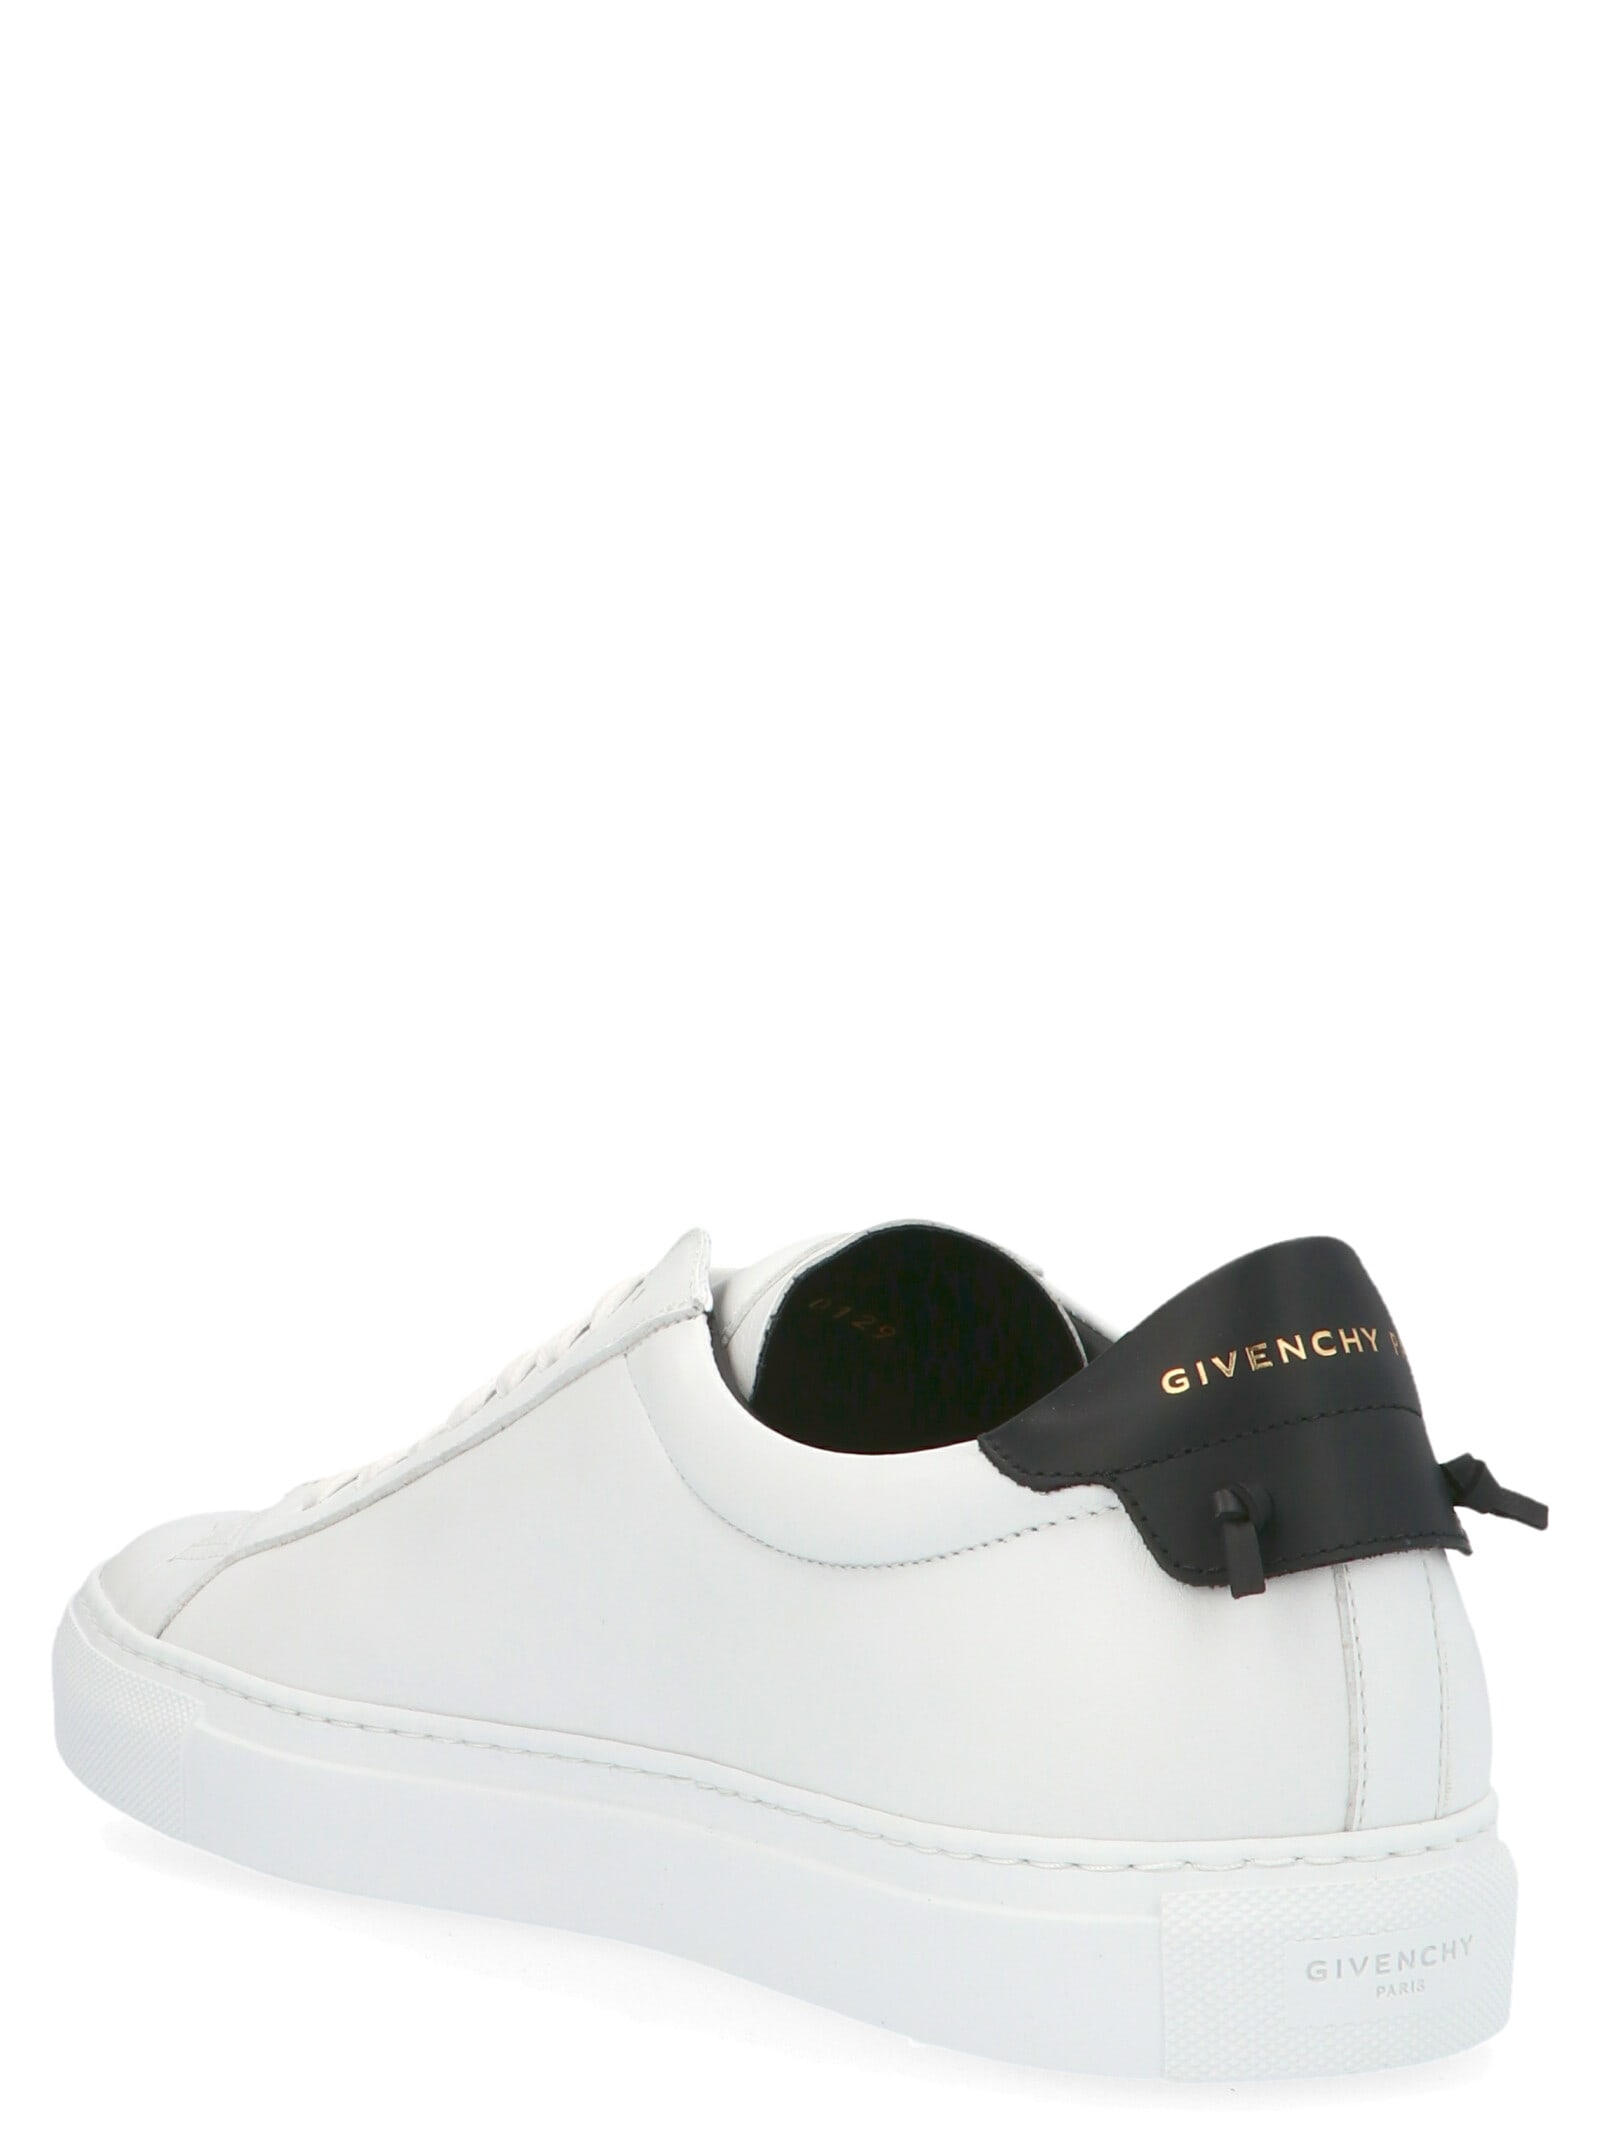 givenchy paris white sneakers off 54